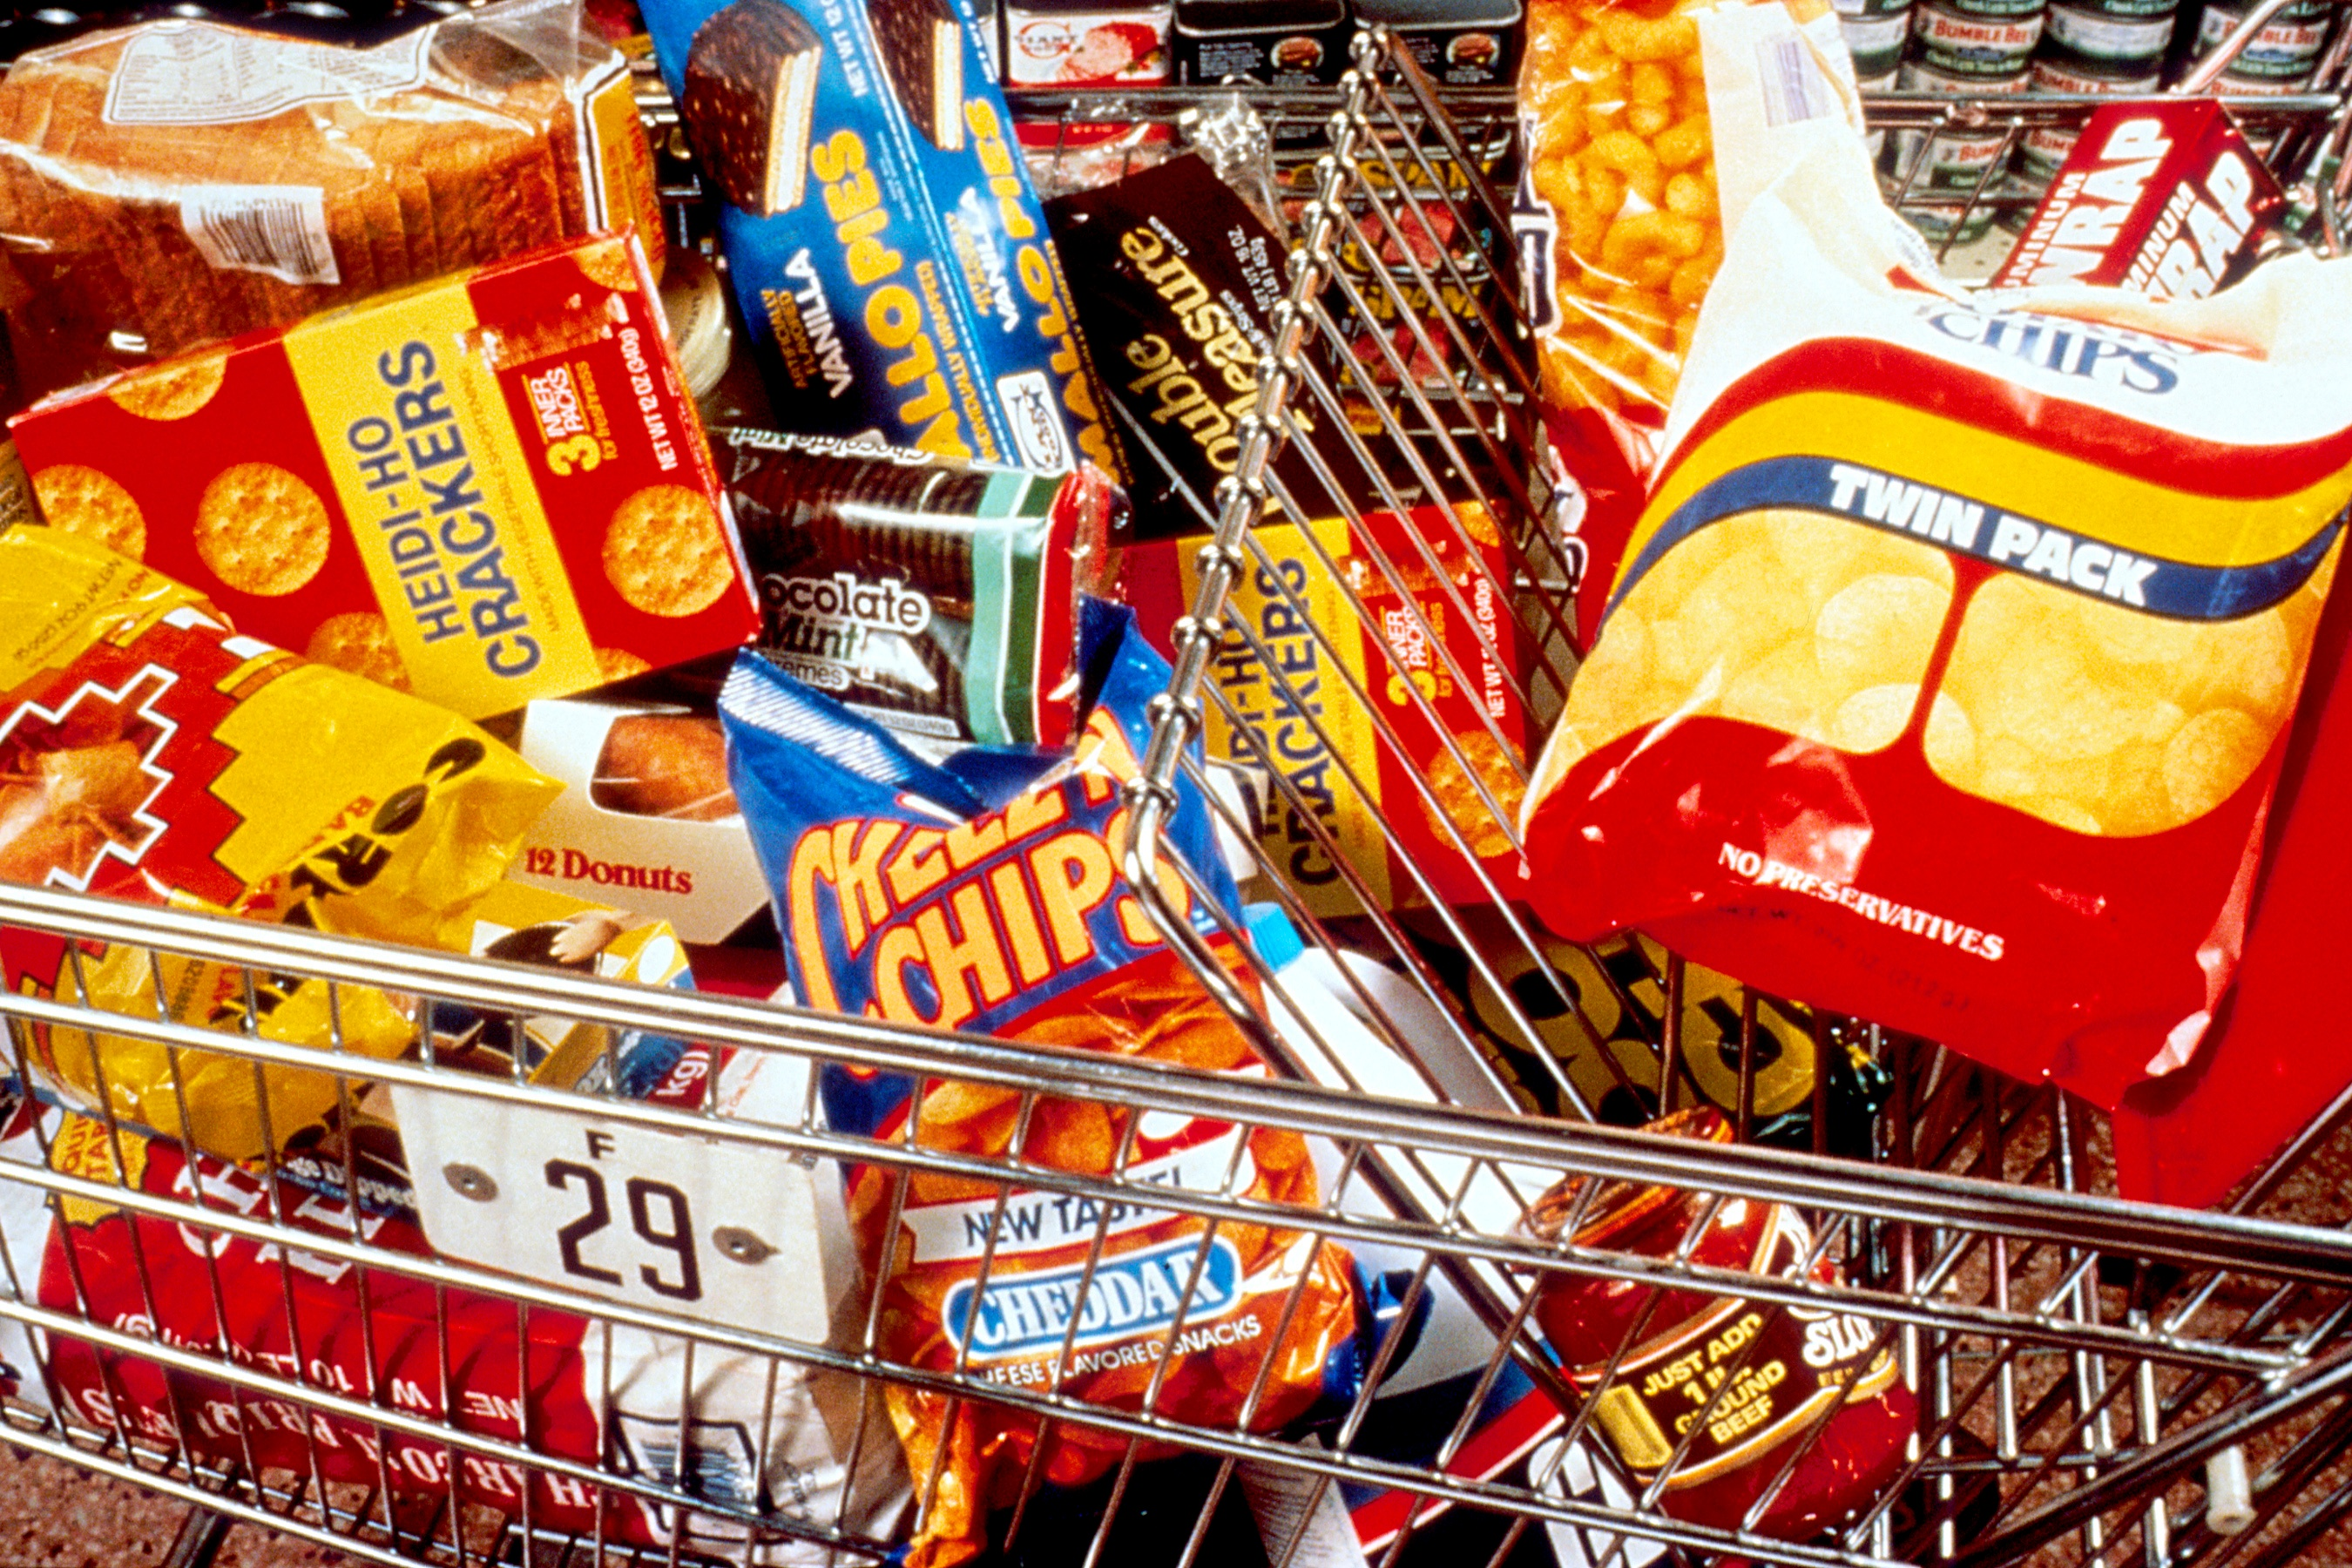 Unhealthy_snacks_in_cart.jpg